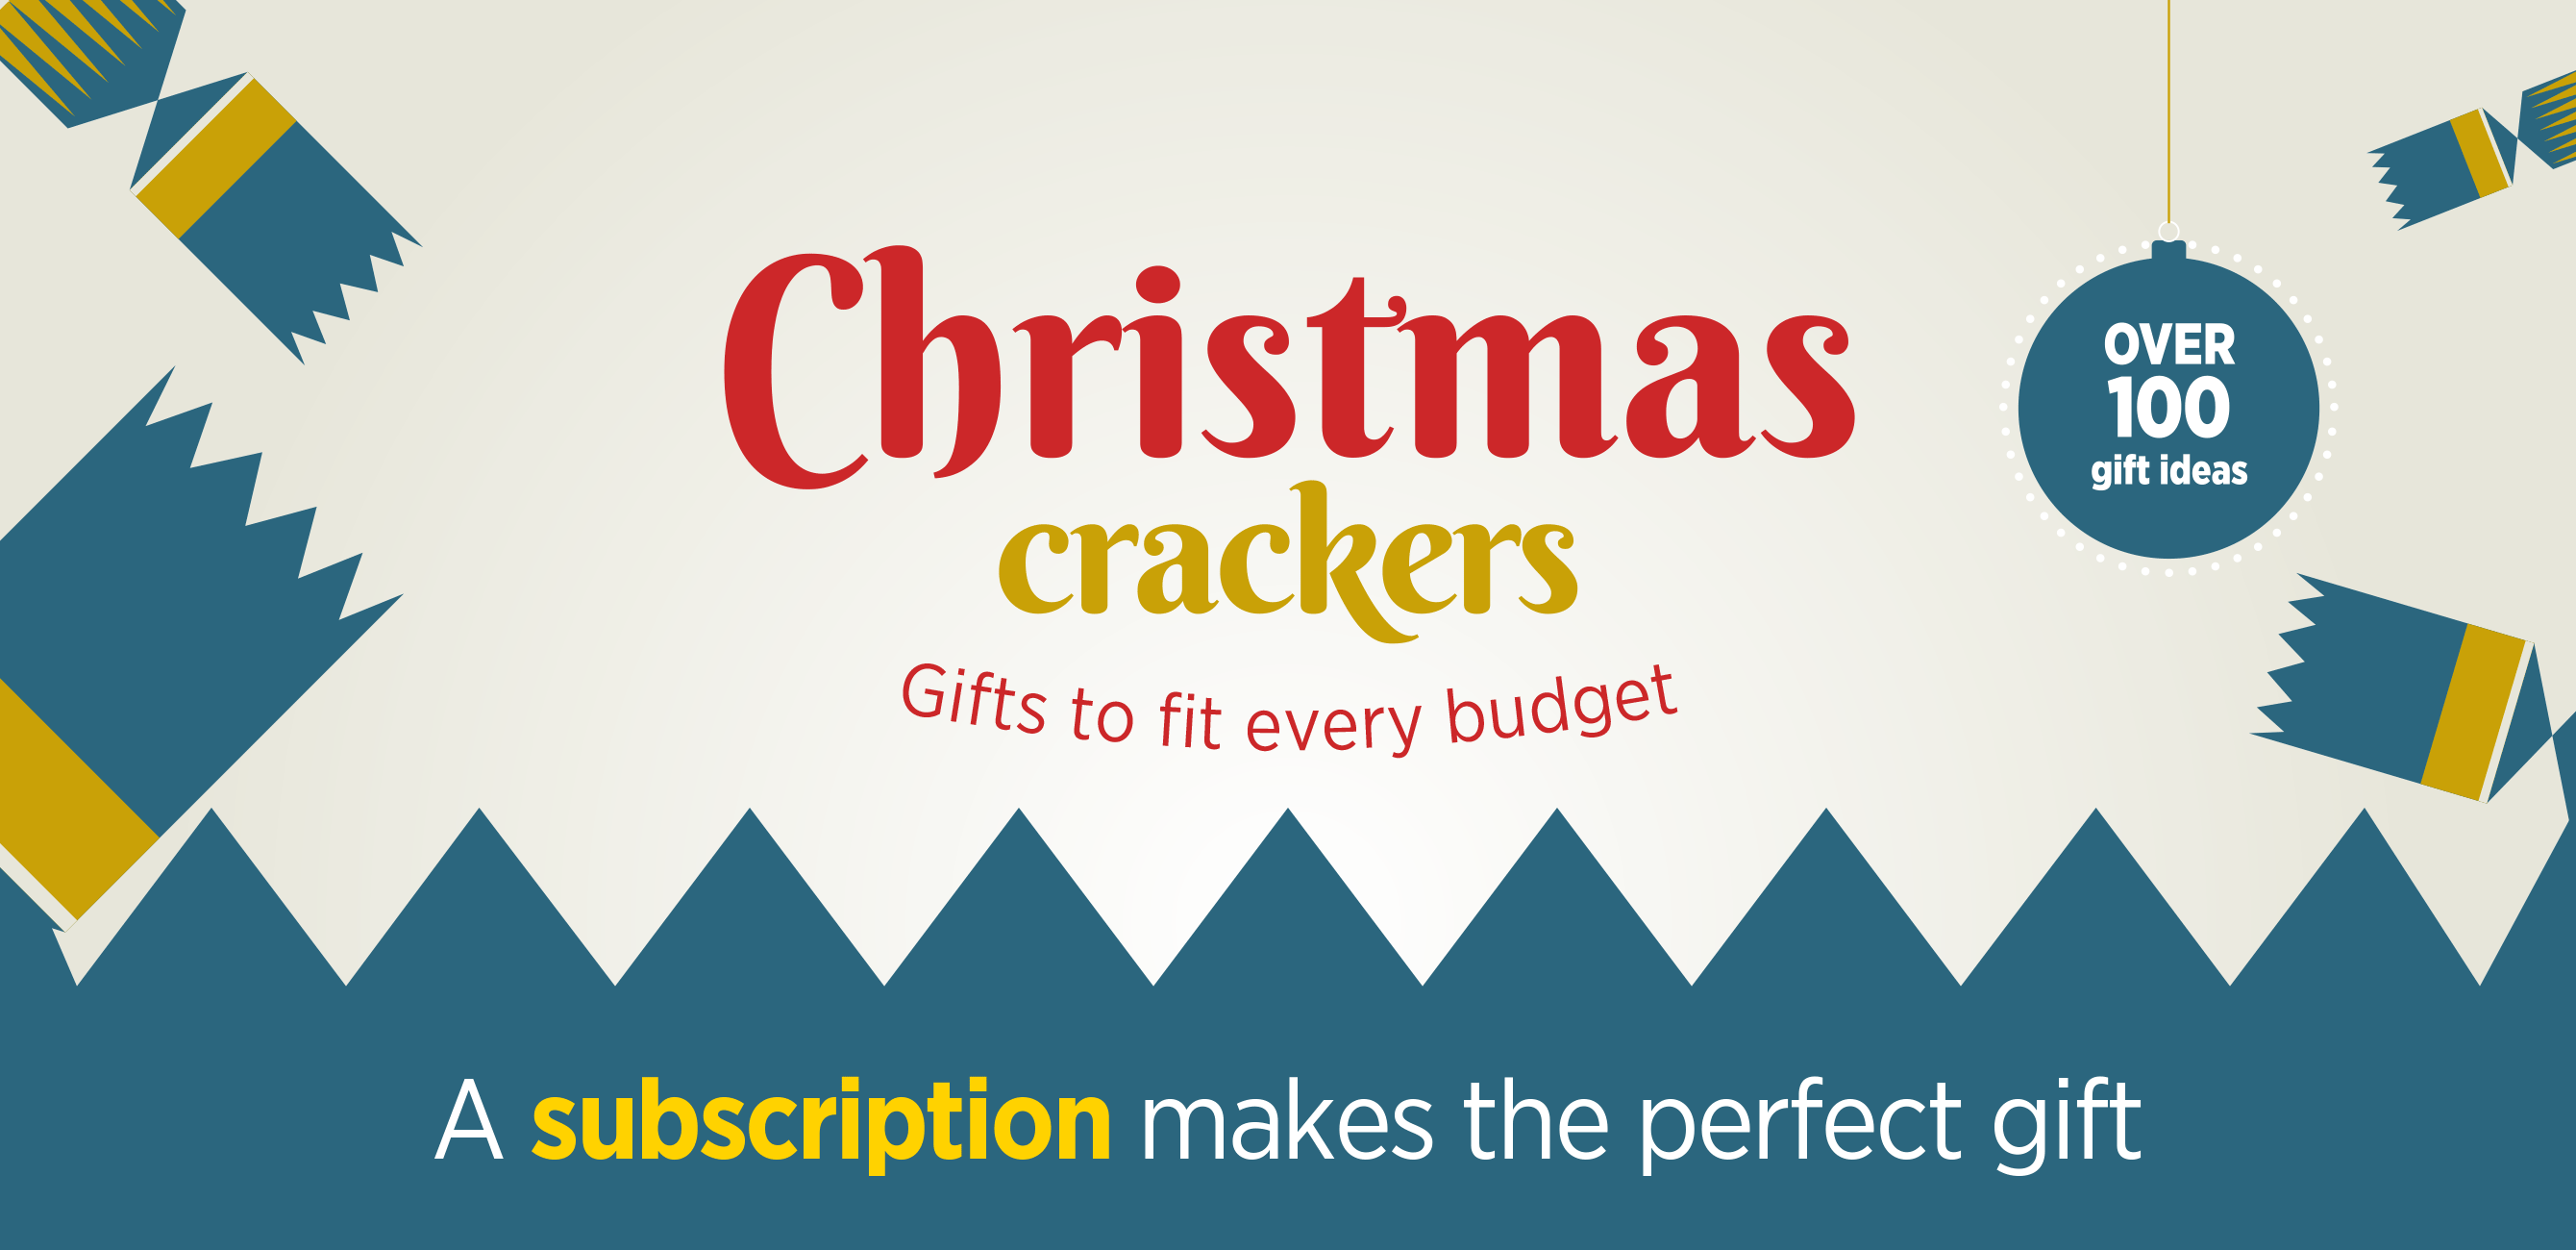 Christmas crackers - Gifts to fit every budget